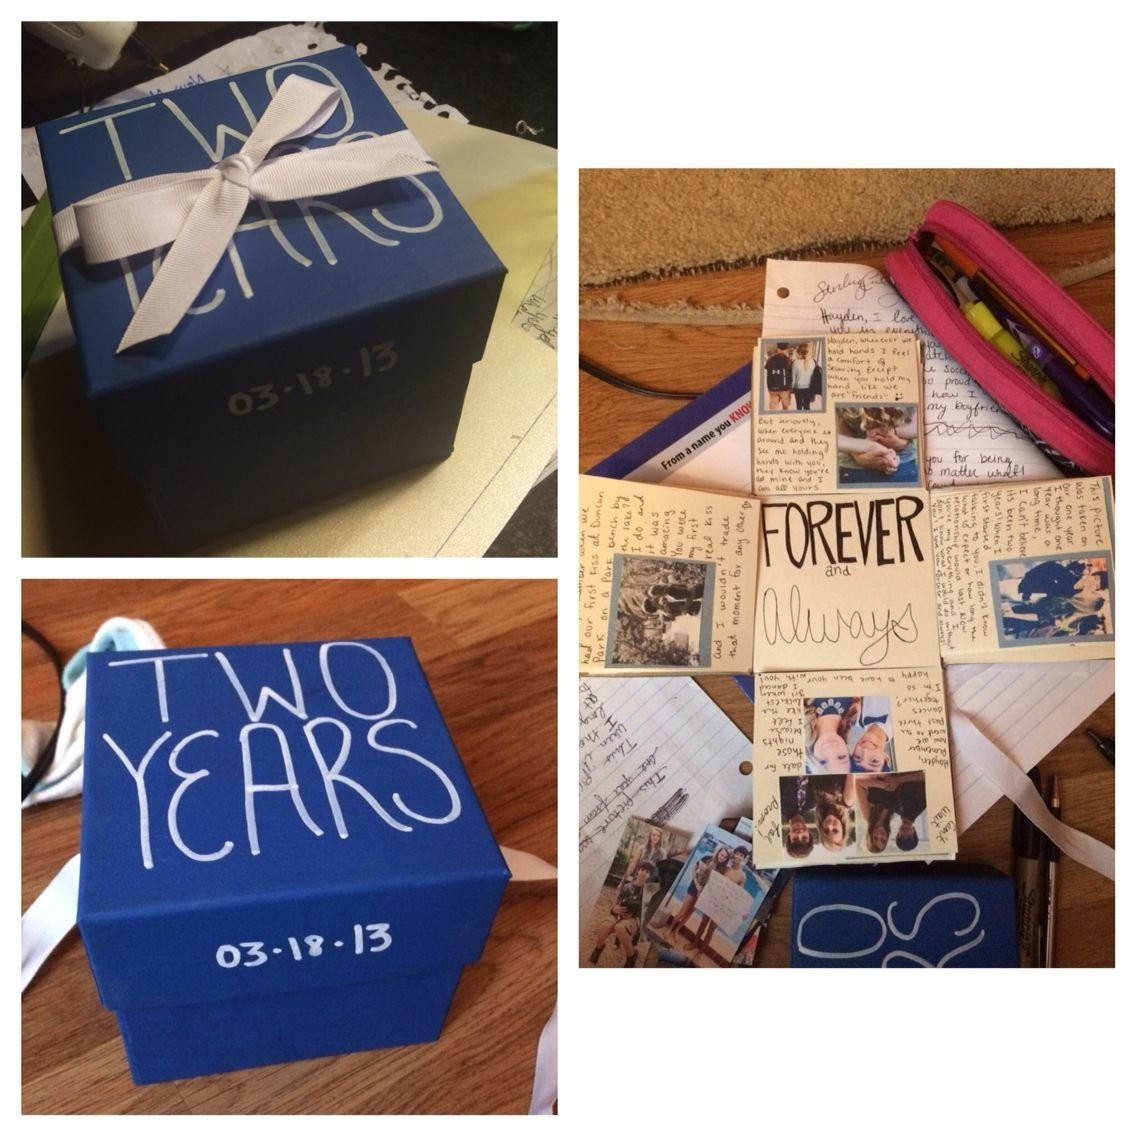 10 Fashionable 2 Year Anniversary Ideas For Him anniversary box for my boyfriend and is 2 year i made different 2021